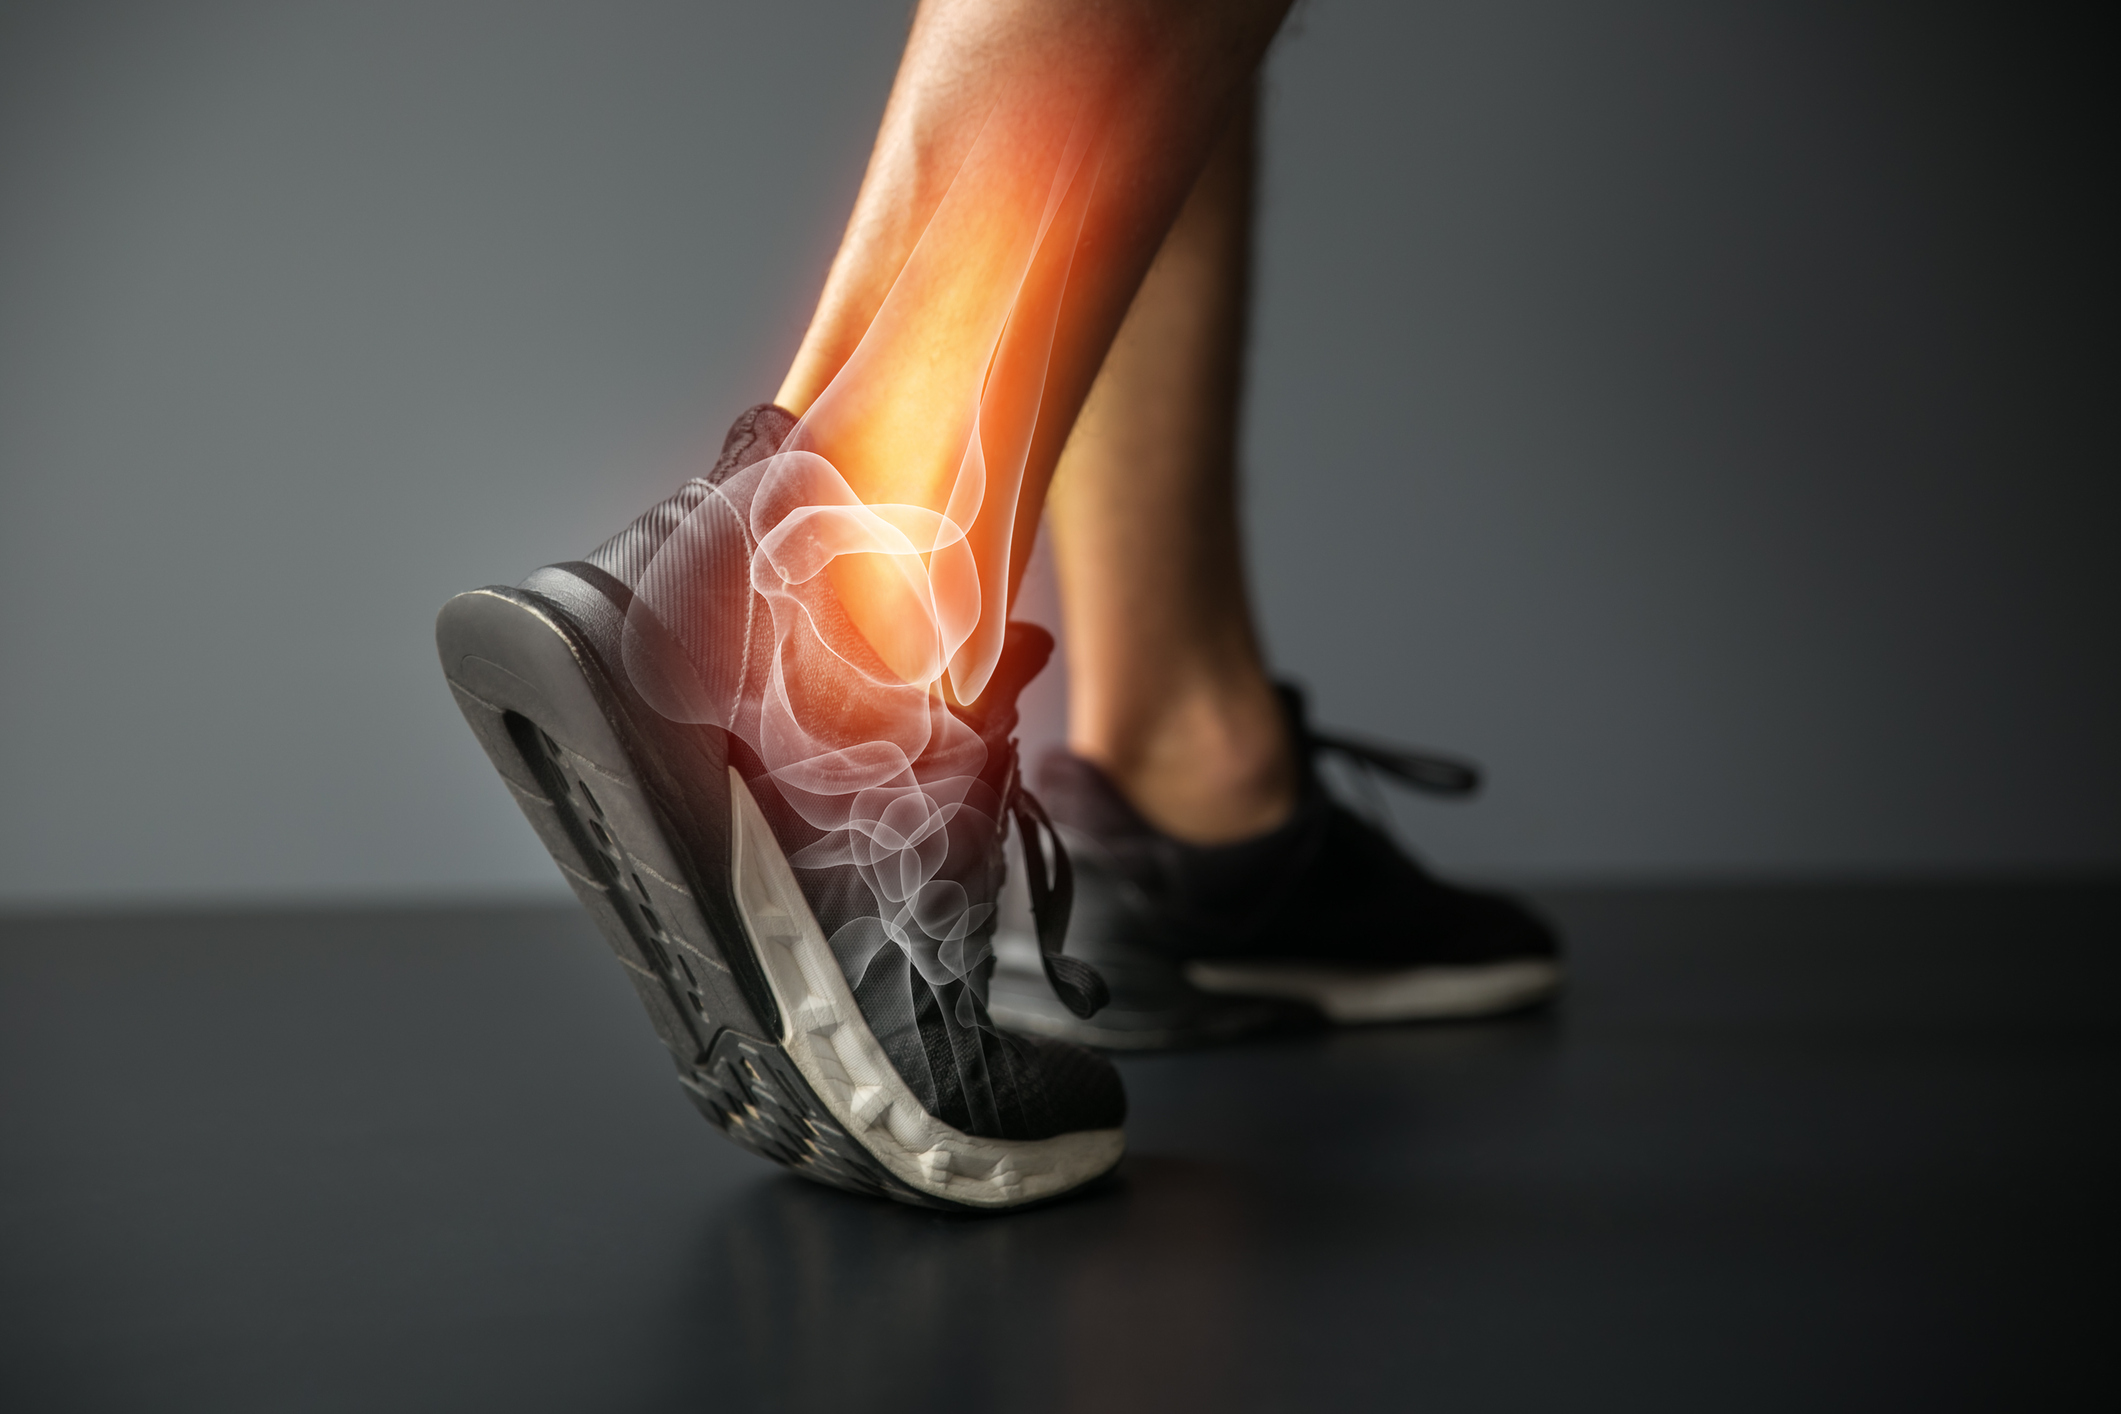 5 Easy Ways to Help with Foot and Ankle Pain